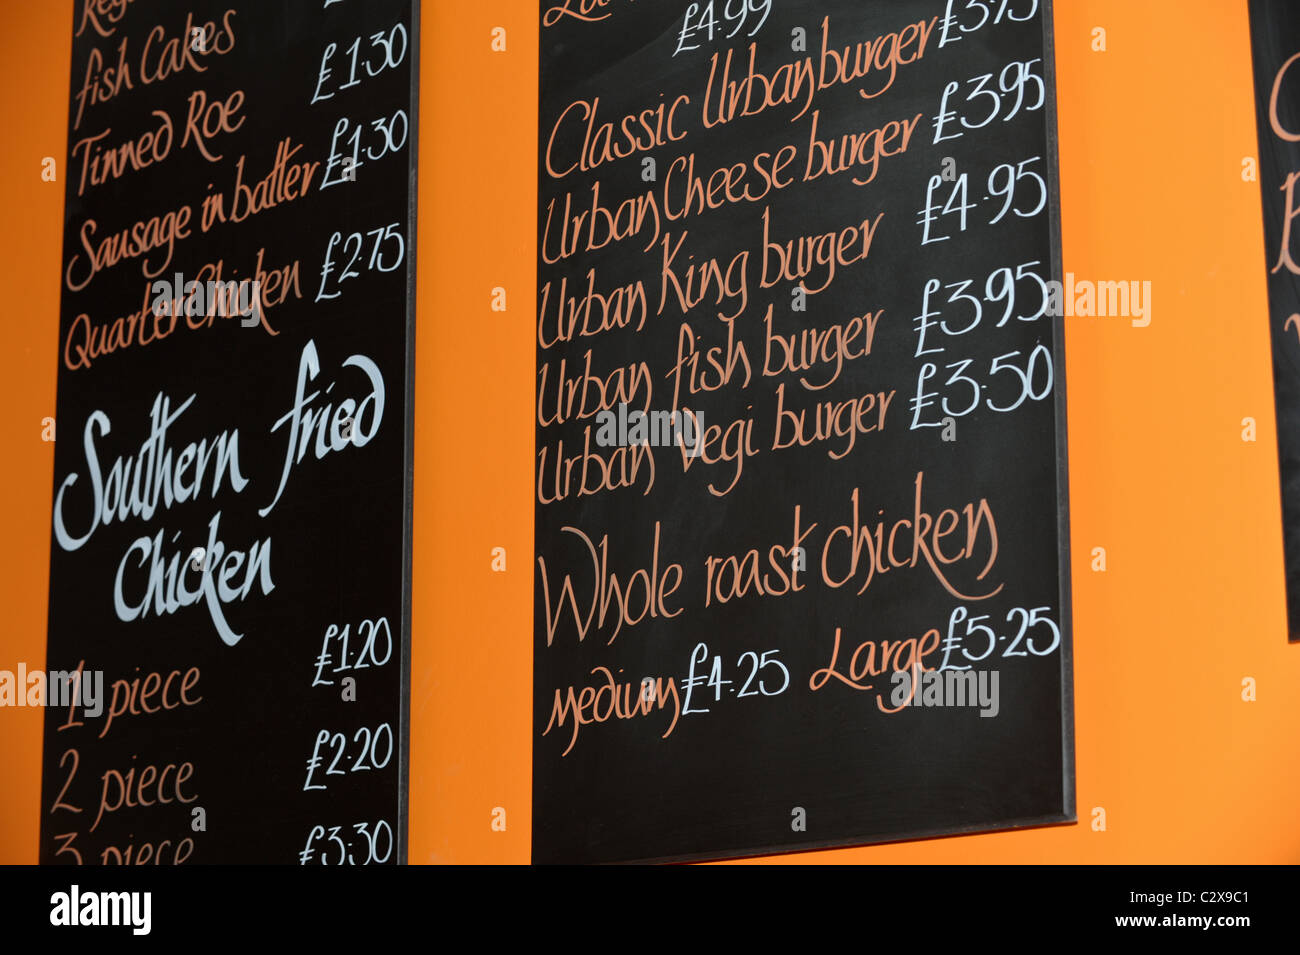 Fast food menu on a blackboard  listing southern fried chicken, sausage in batter, classic burgers and whole roast - Stock Image